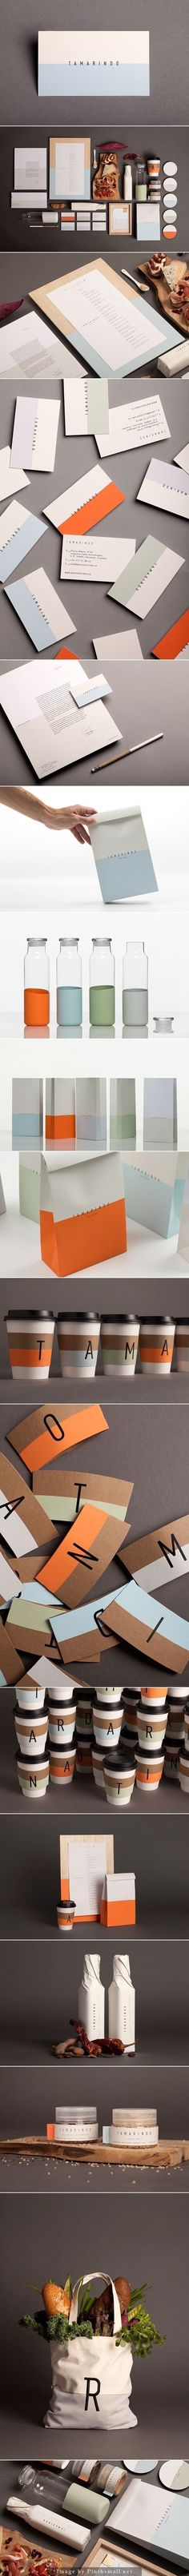 Different branding colors on different items